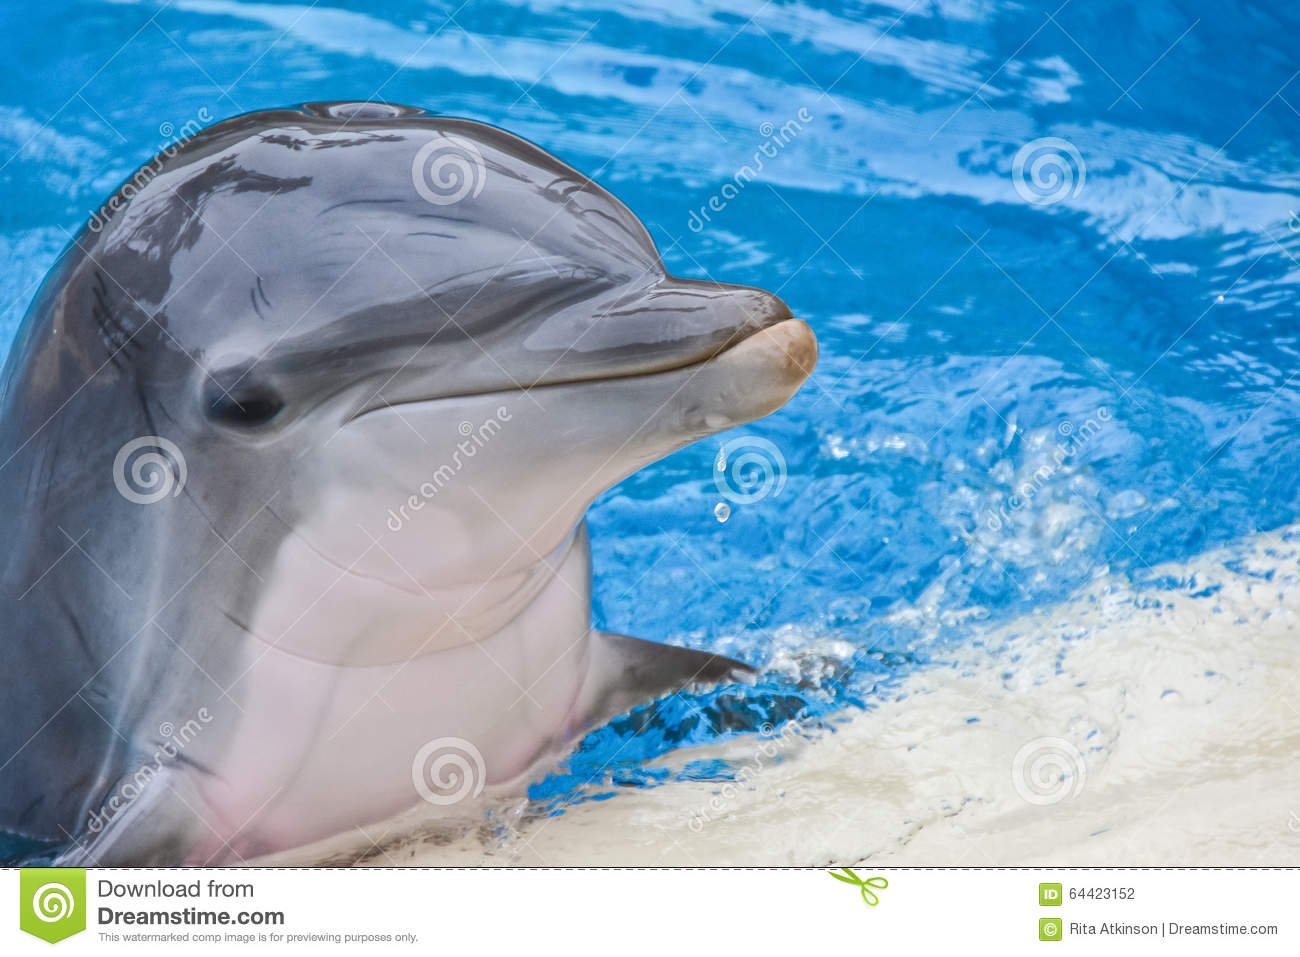 Dauphin souriant en portrait de piscine photo stock for Piscine 3 dauphins